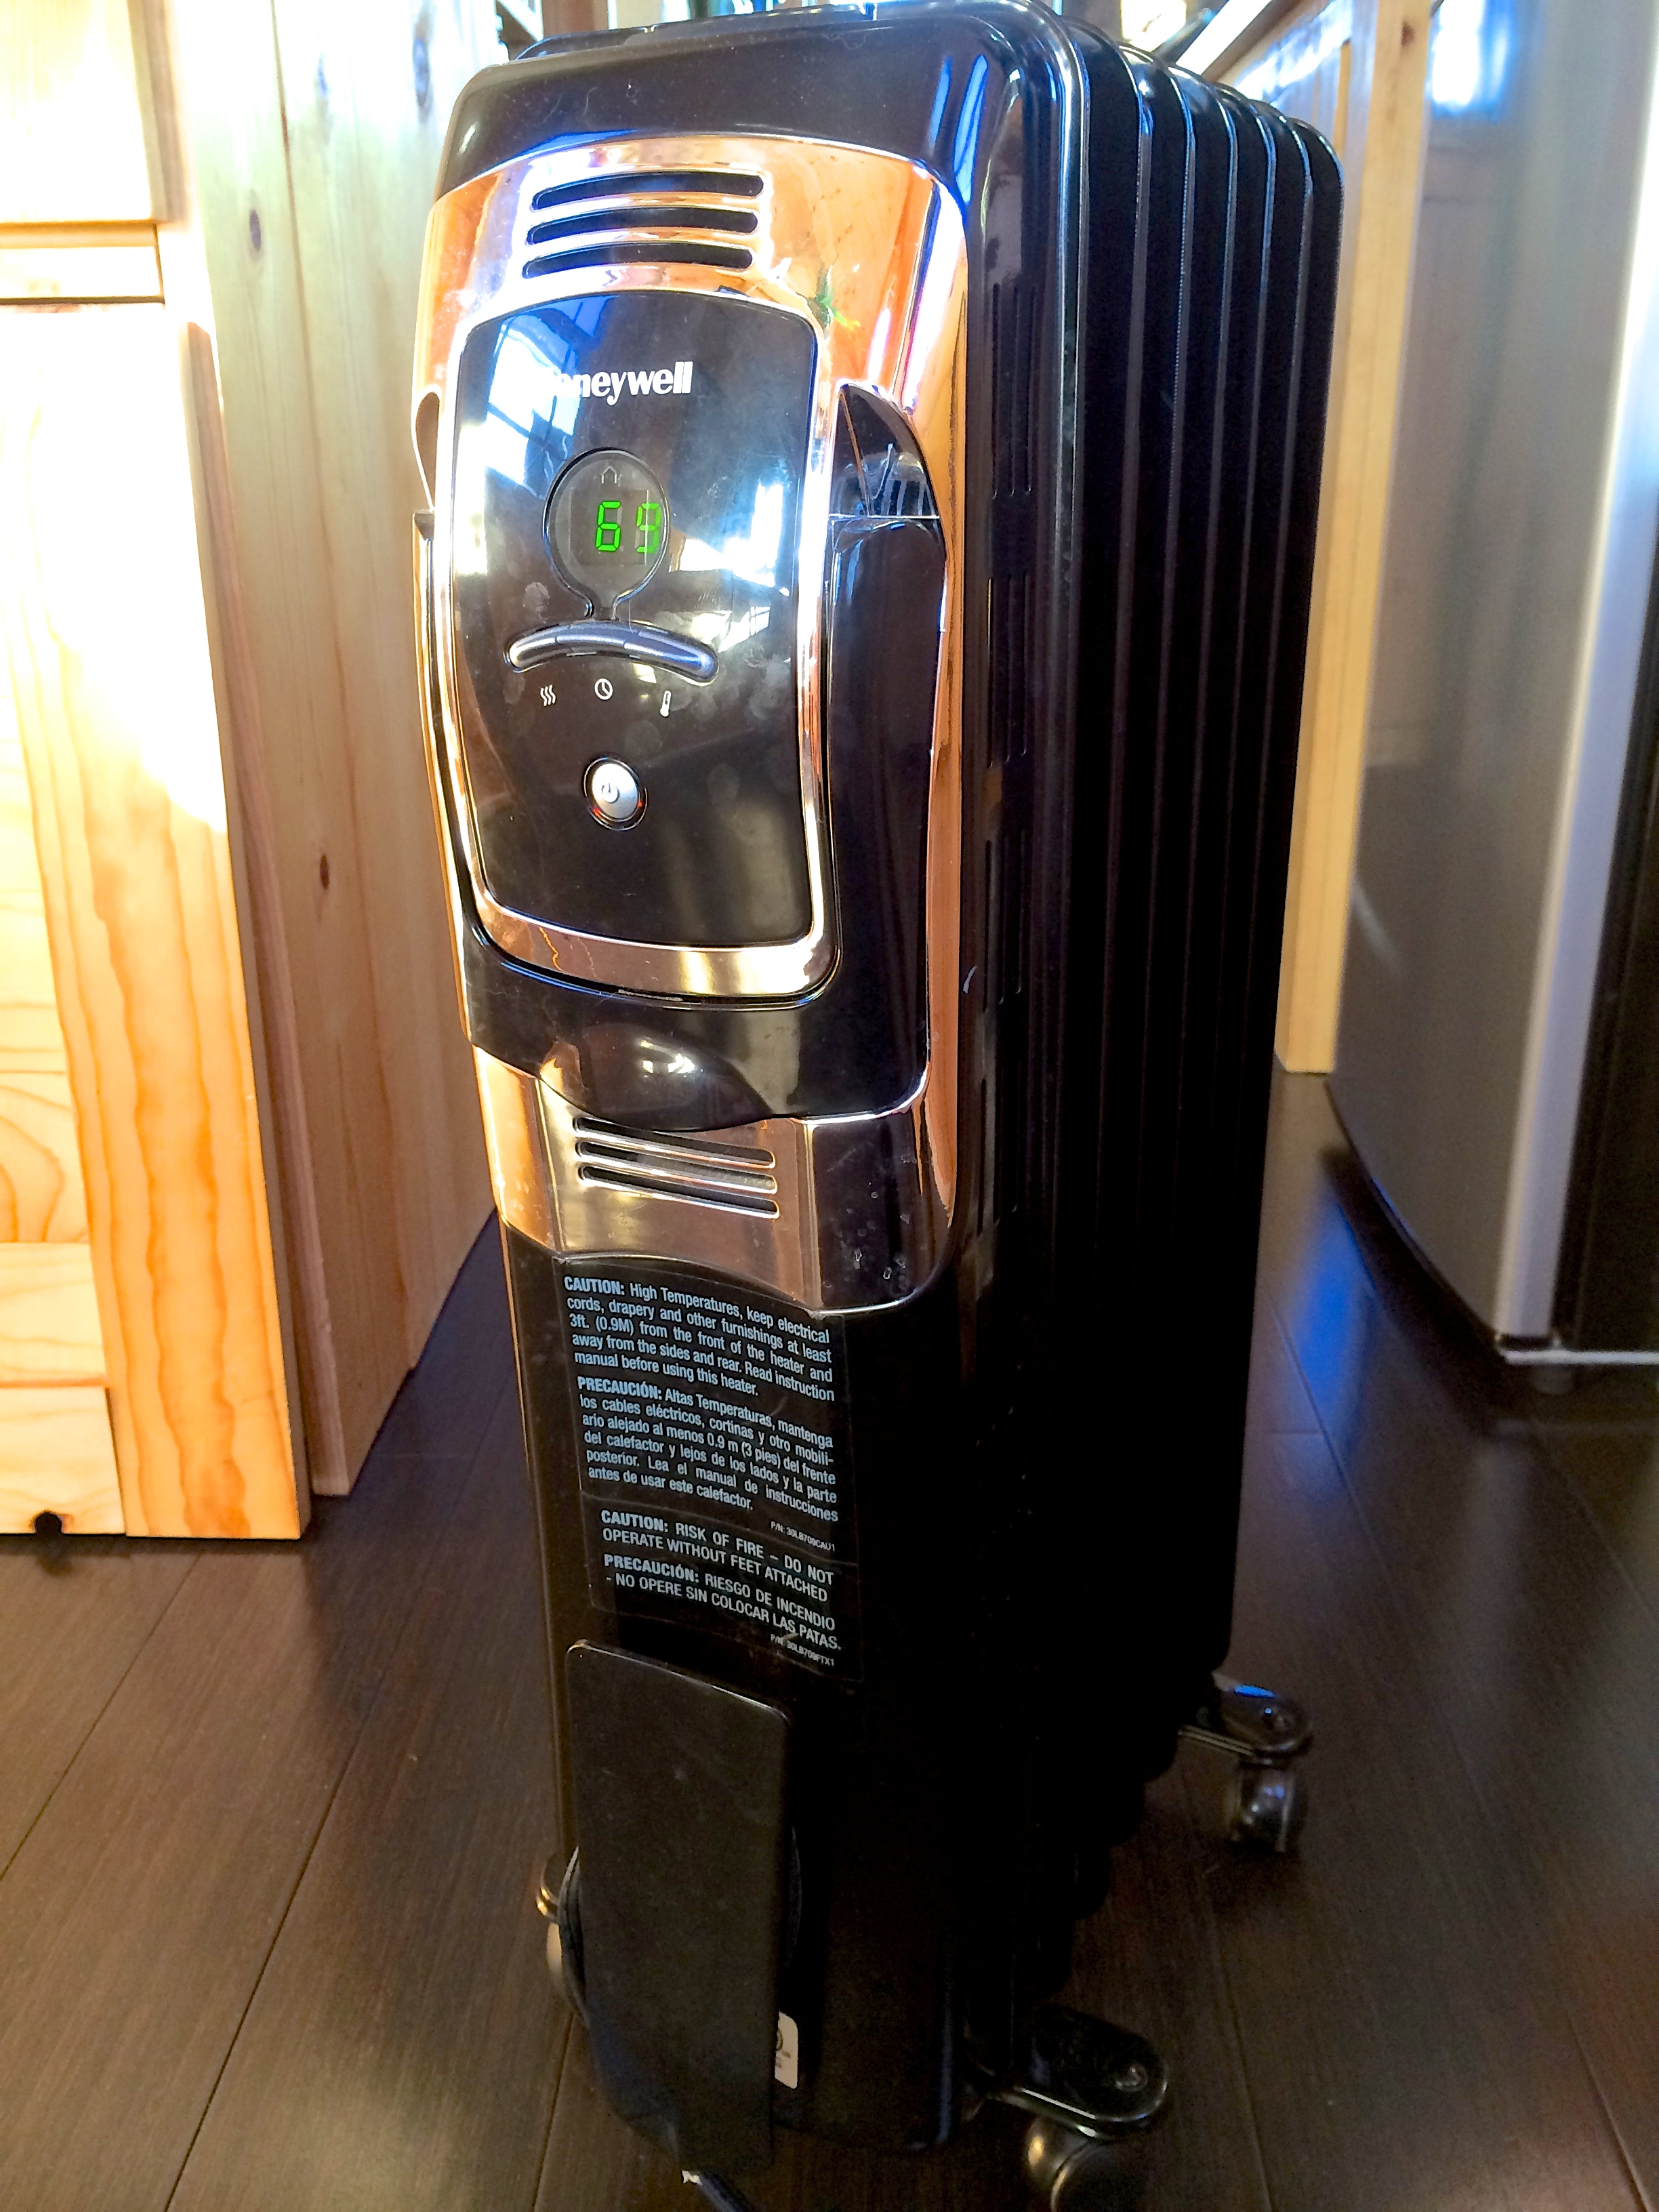 This is our Honeywell- Oil Filled, Electric Space Heater. Has temp setting, high-medium-low settings and an off timer.